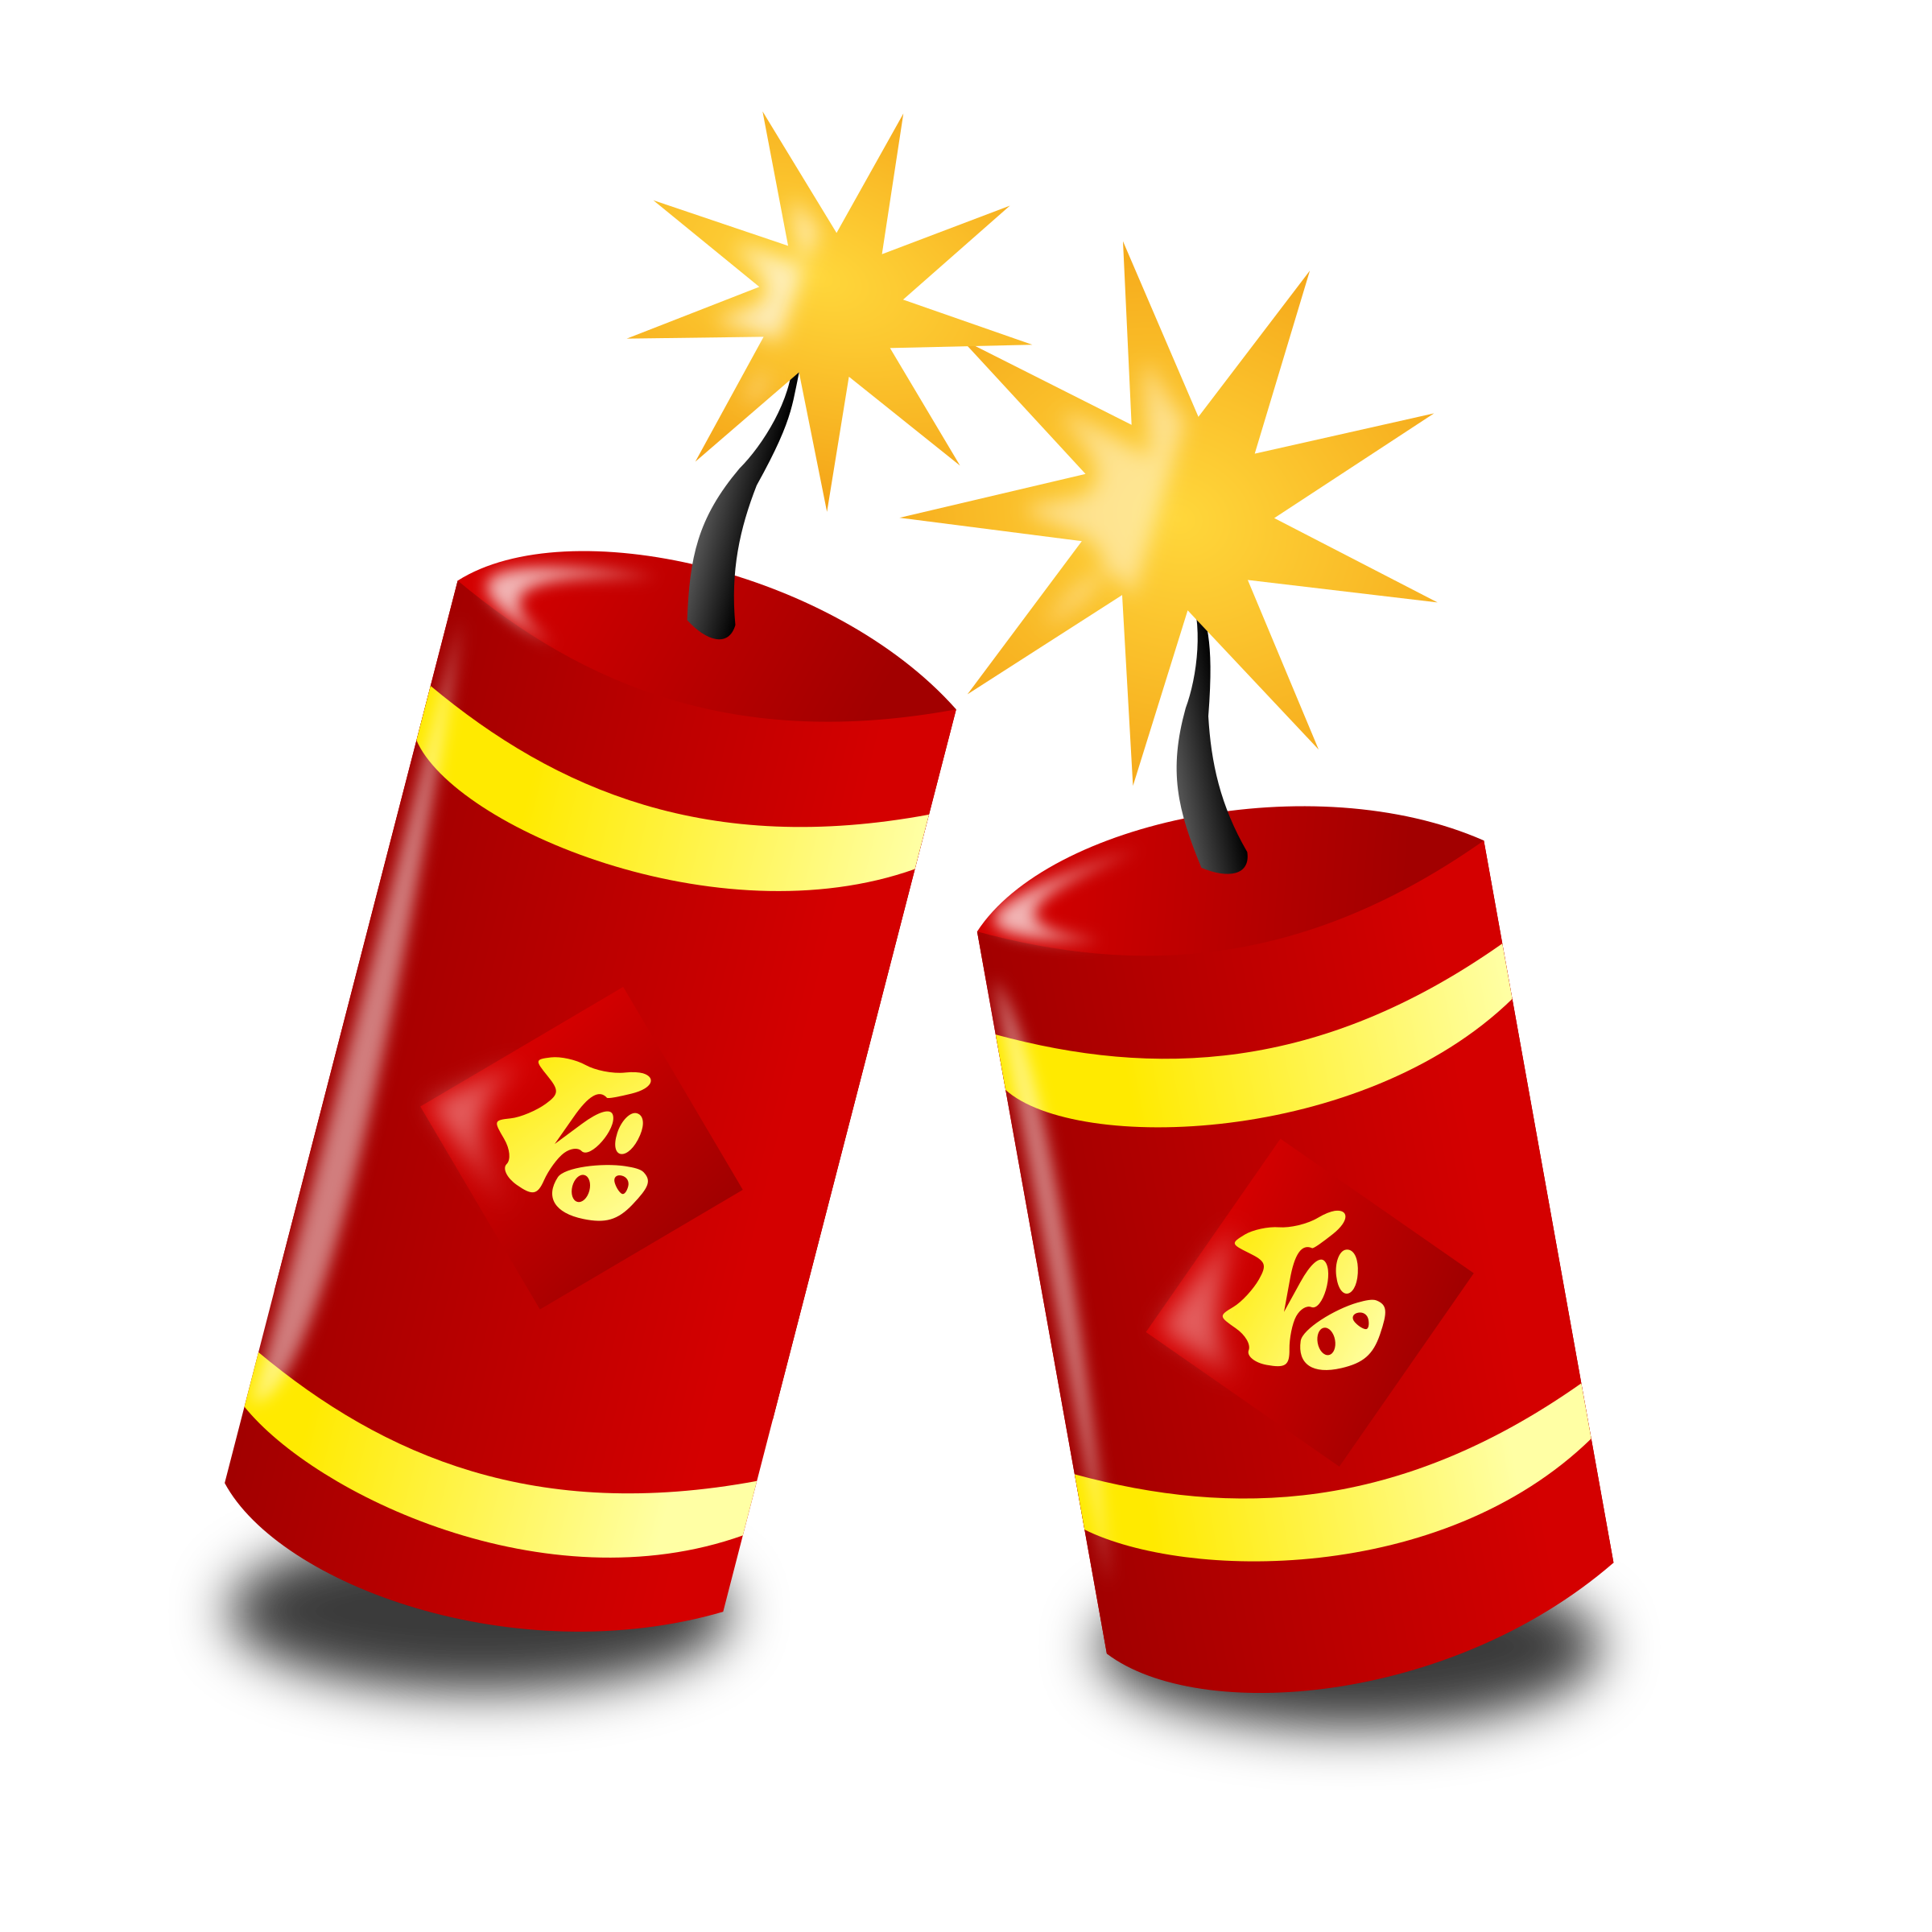 Chinese clipart icon. New year big image